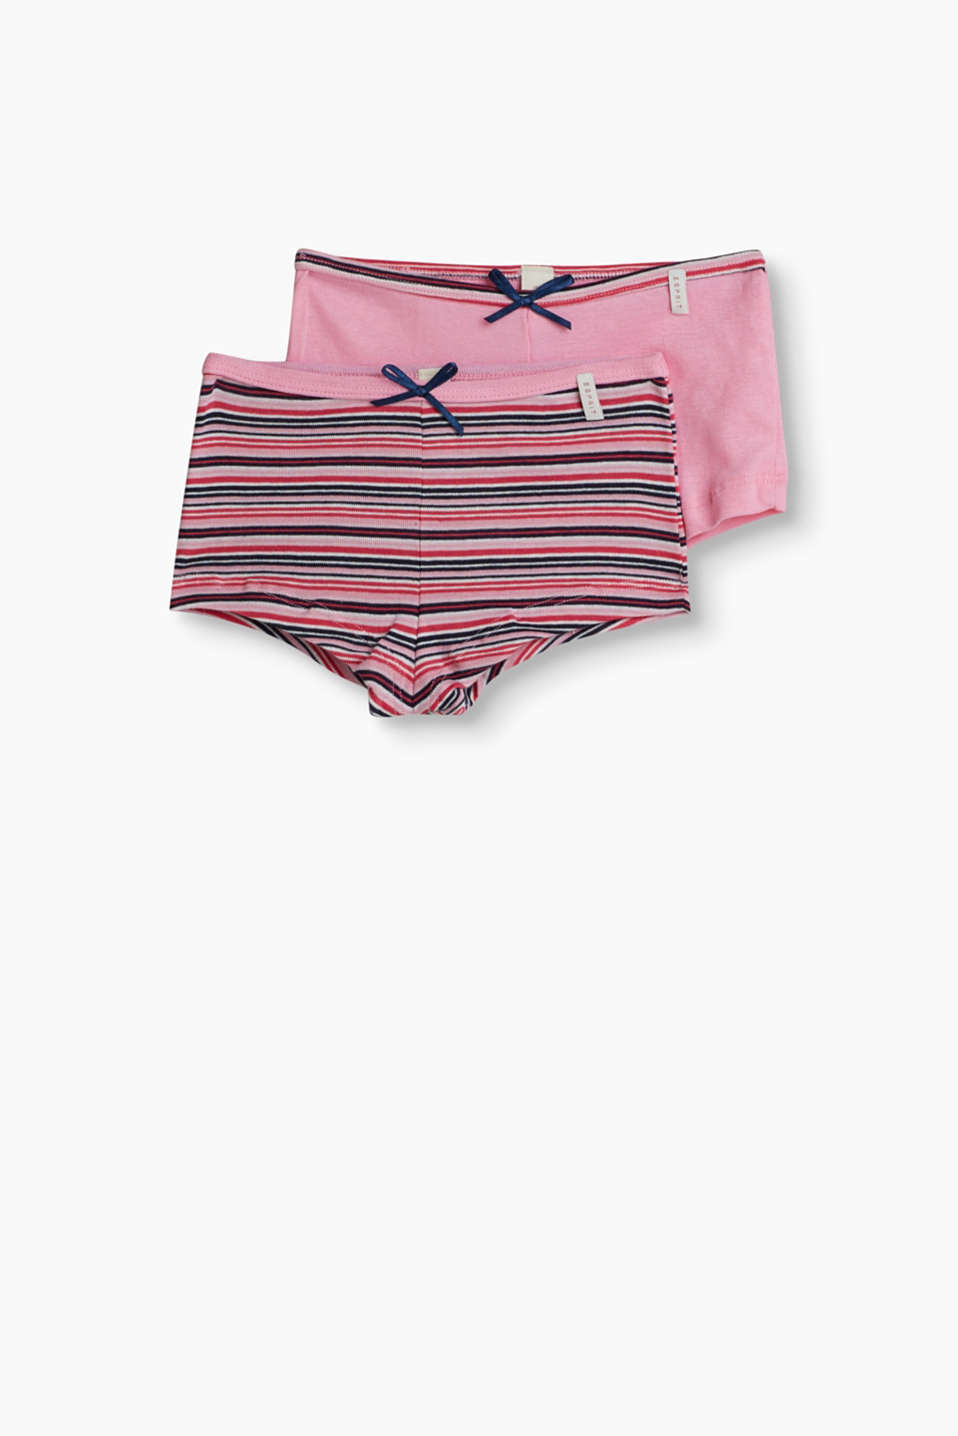 These cotton jersey hot pants unite exceptional comfort with a cute look